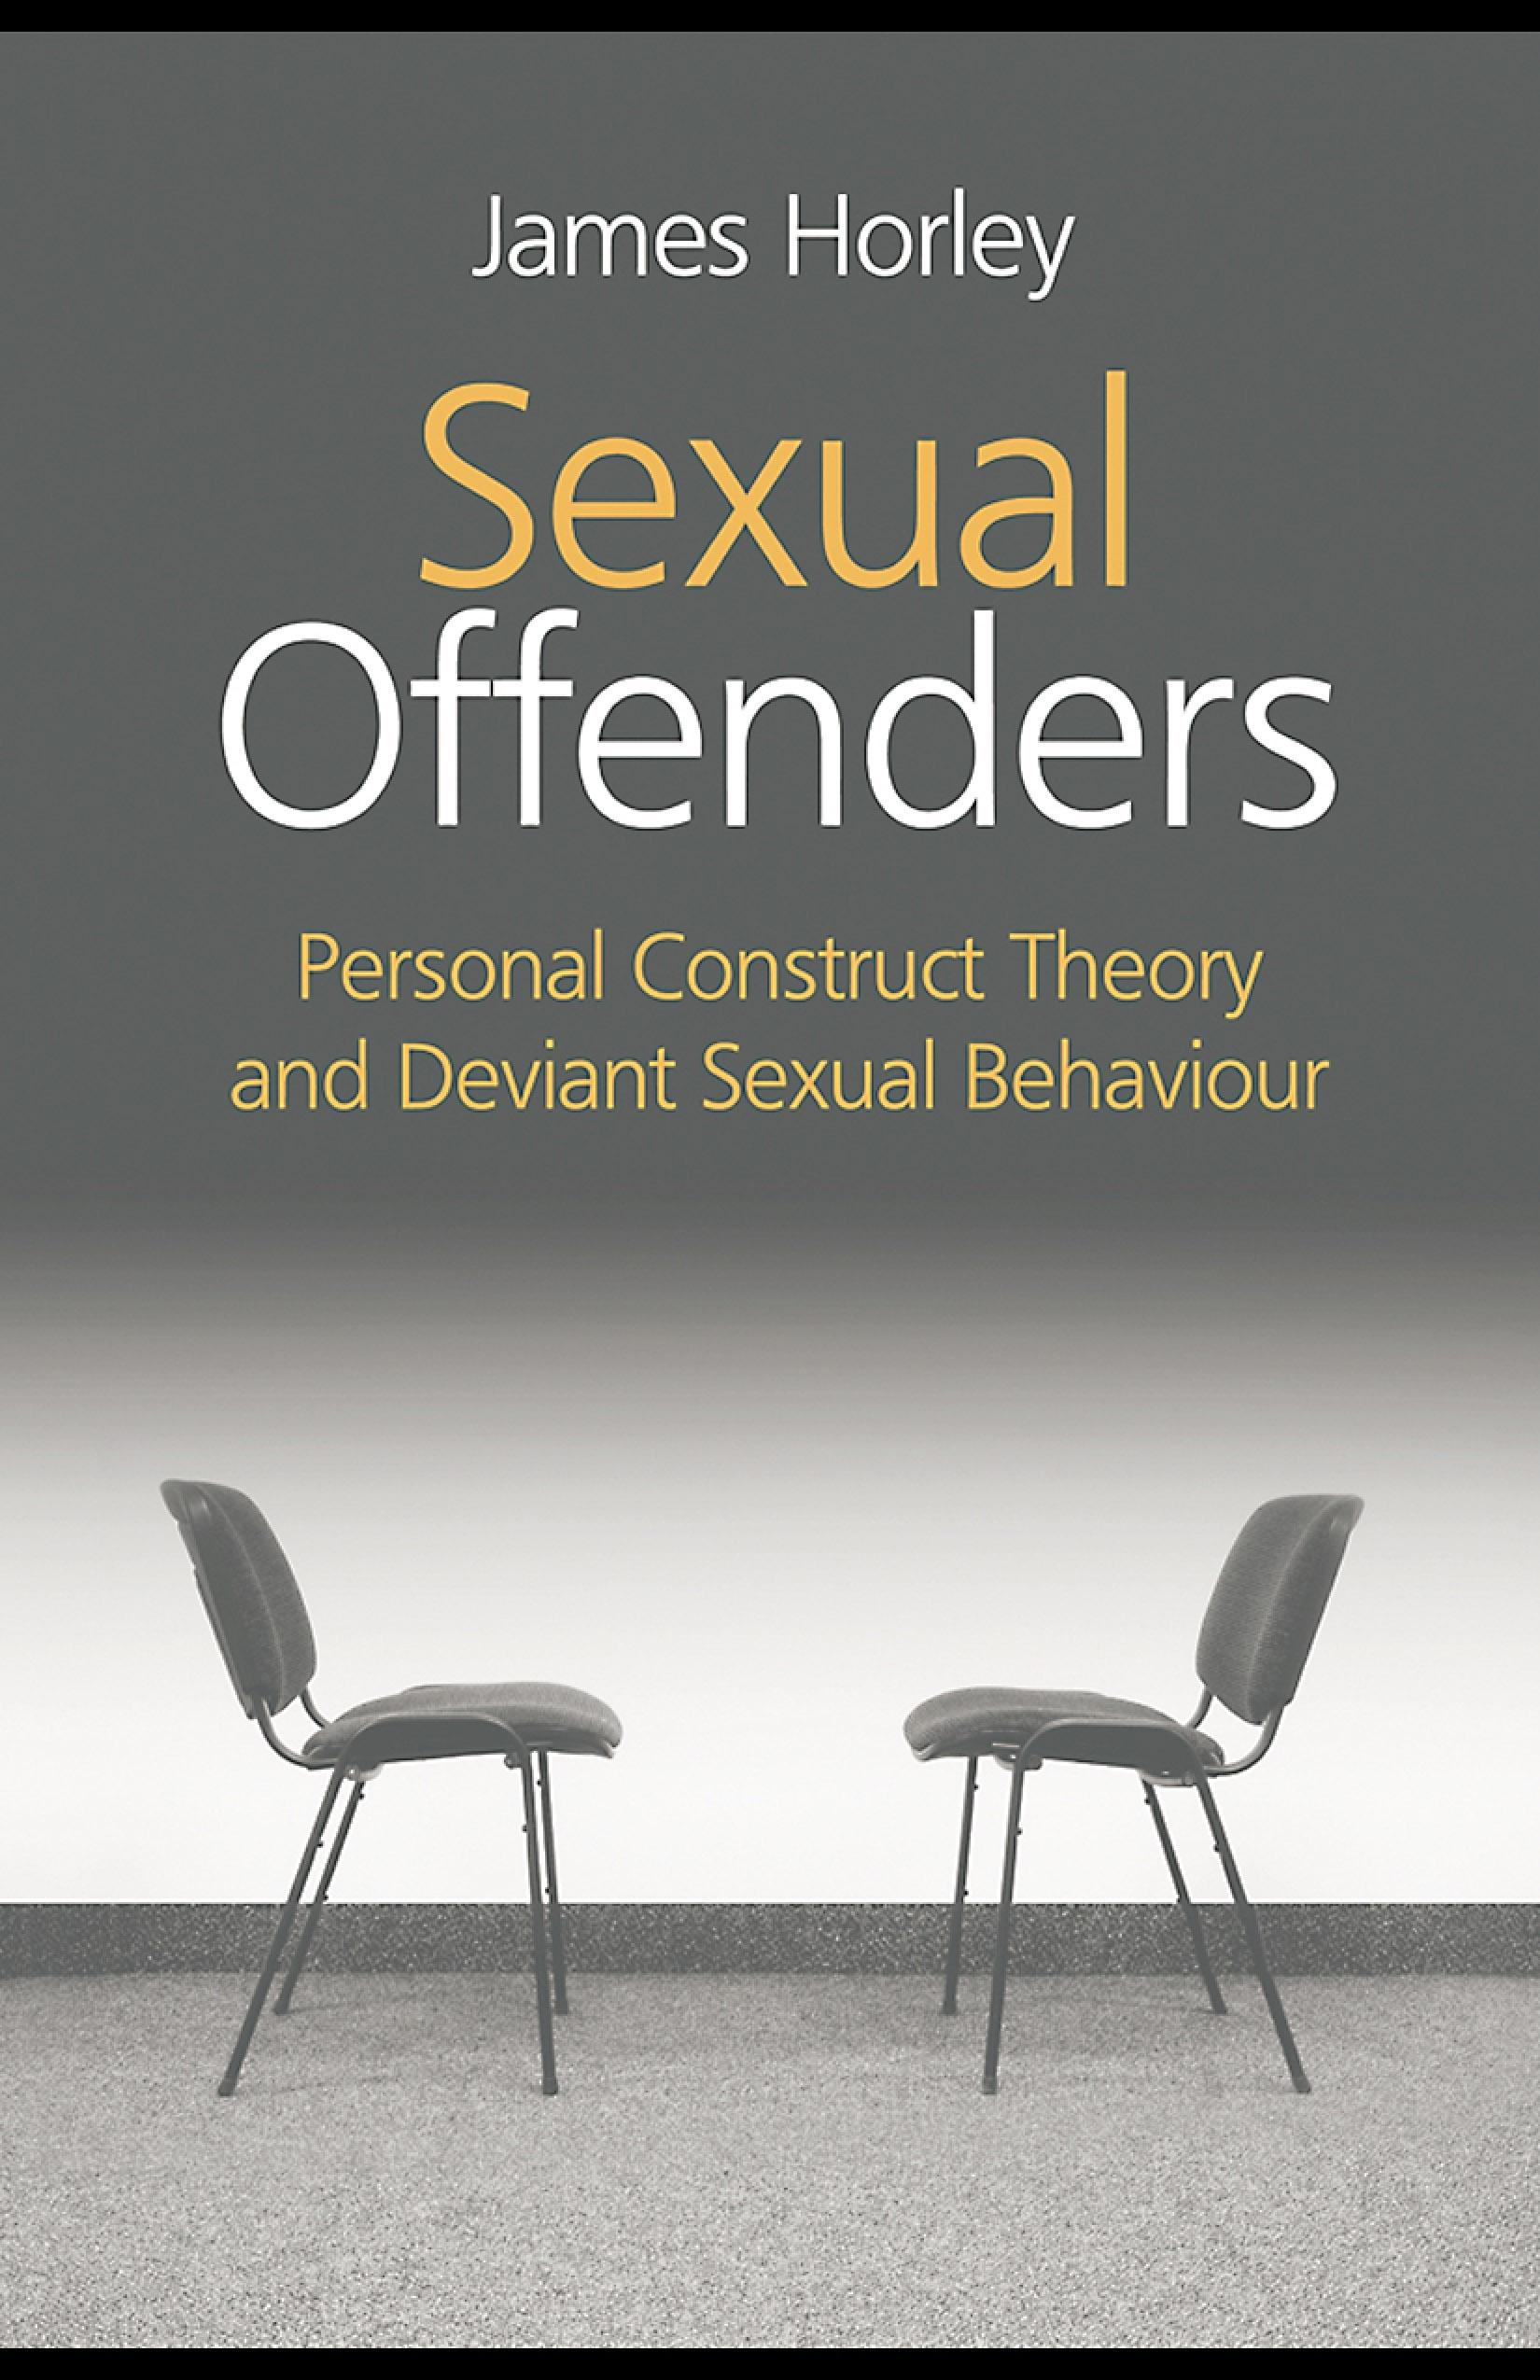 Sexual Offenders: Personal Construct Theory and Deviant Sexual Behaviour